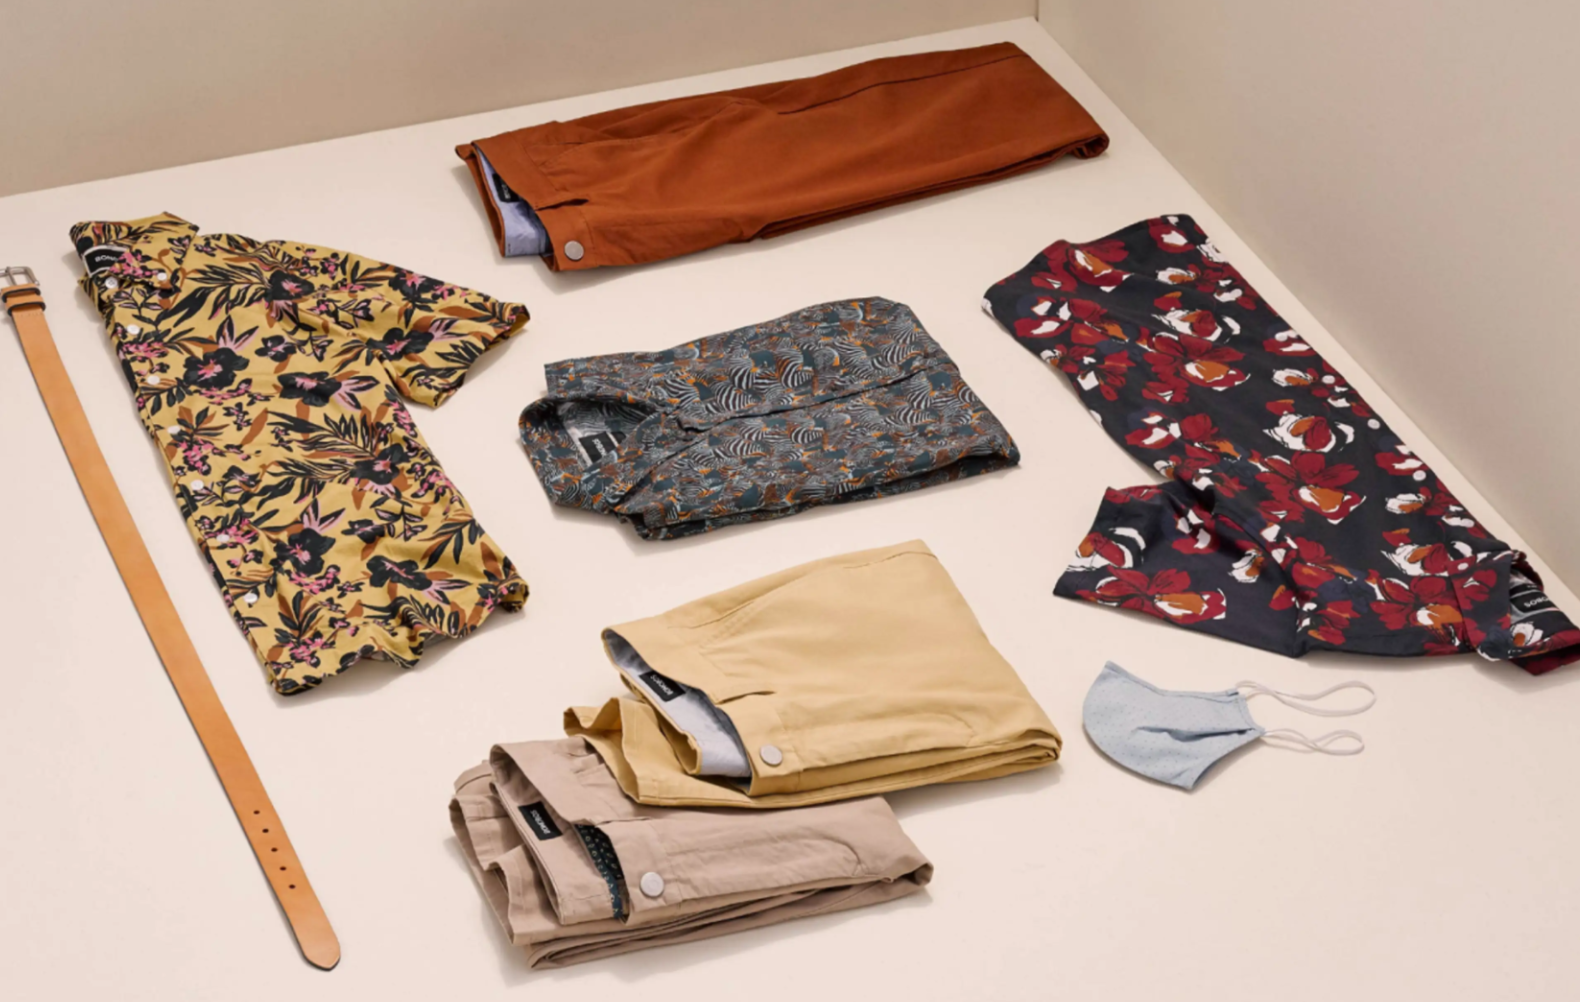 BONOBOS: Extra 25% Off Sitewide for Registered Customers